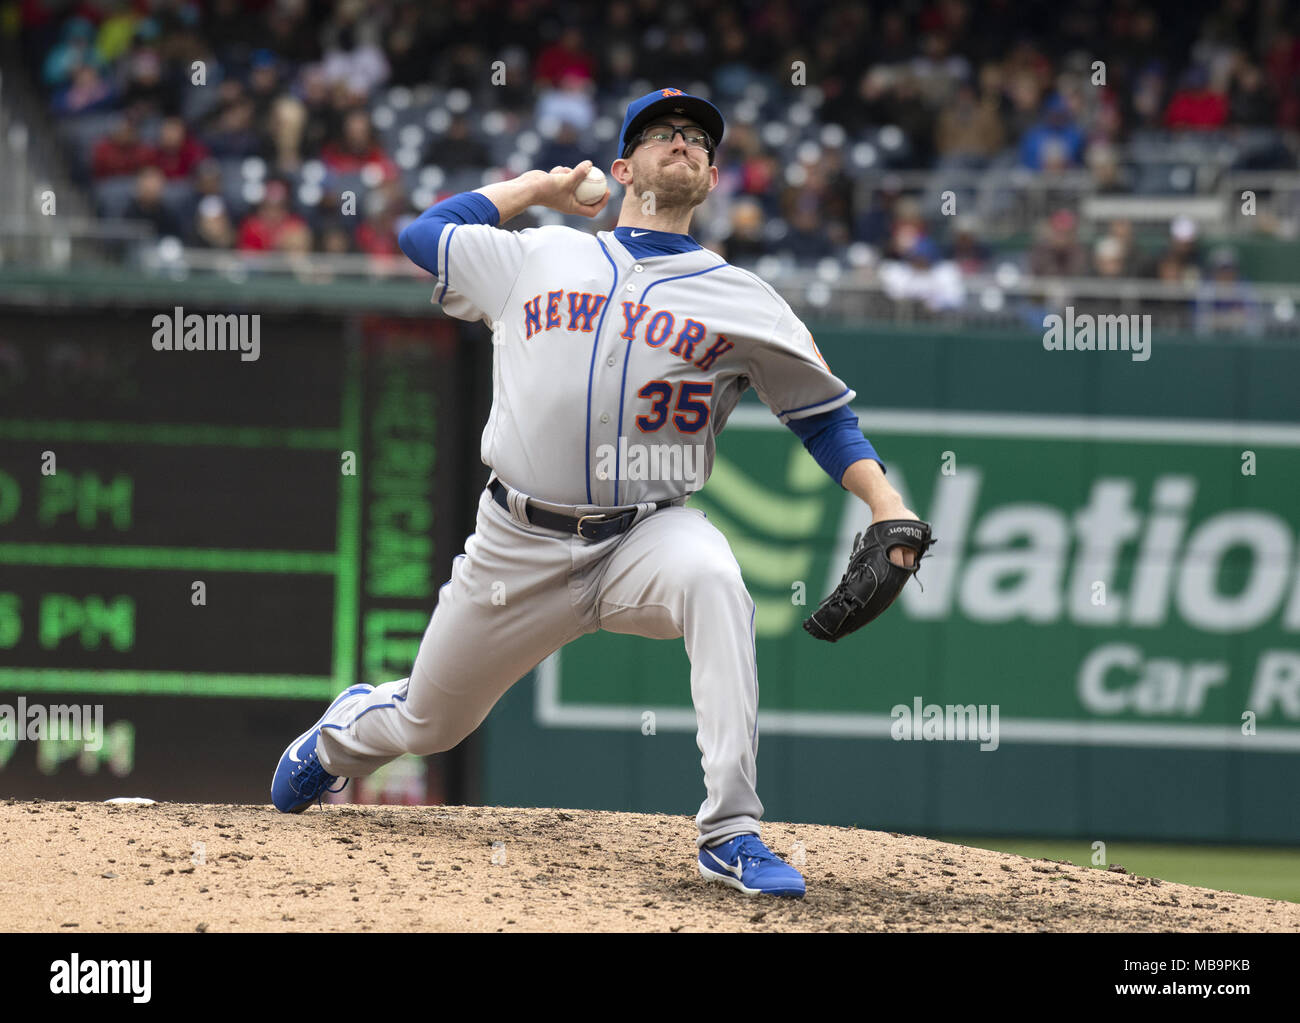 5e56ea3eb New York Mets Relief Pitcher Stock Photos & New York Mets Relief ...